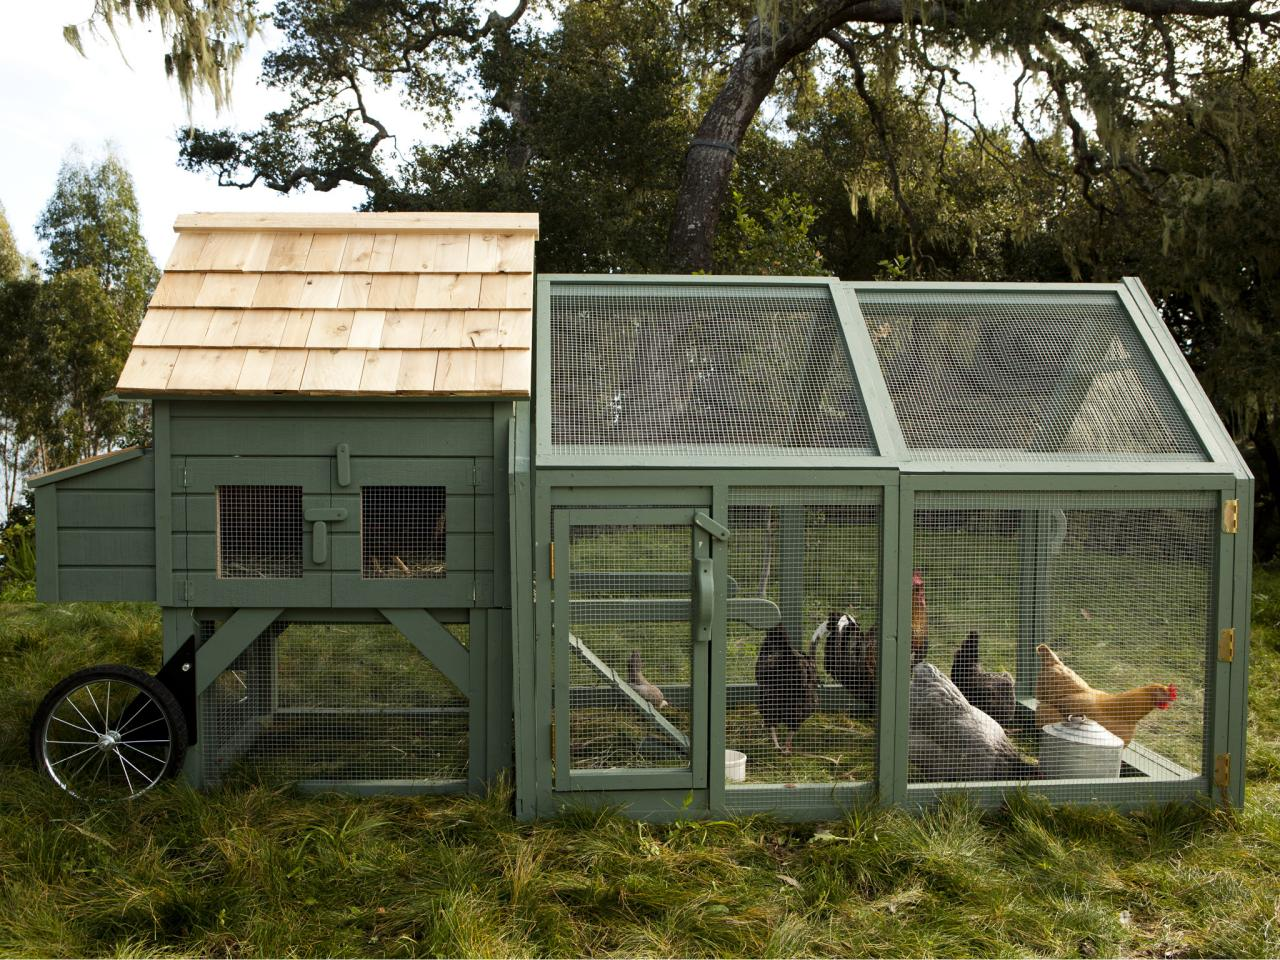 Williams-Sonoma Chicken Coops in Dig It! Design | HGTV